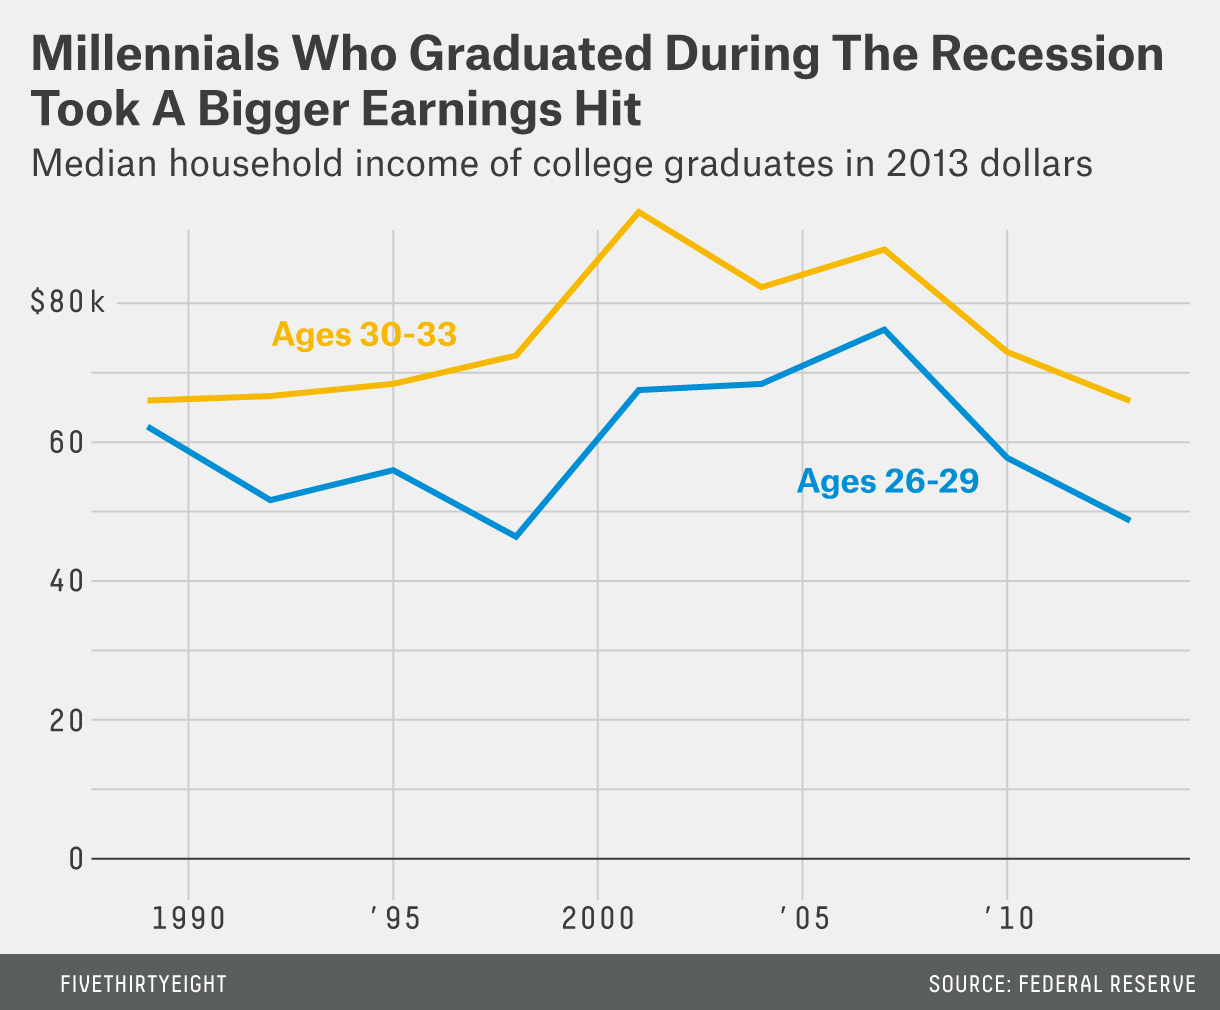 Millennials who graduated during the recession